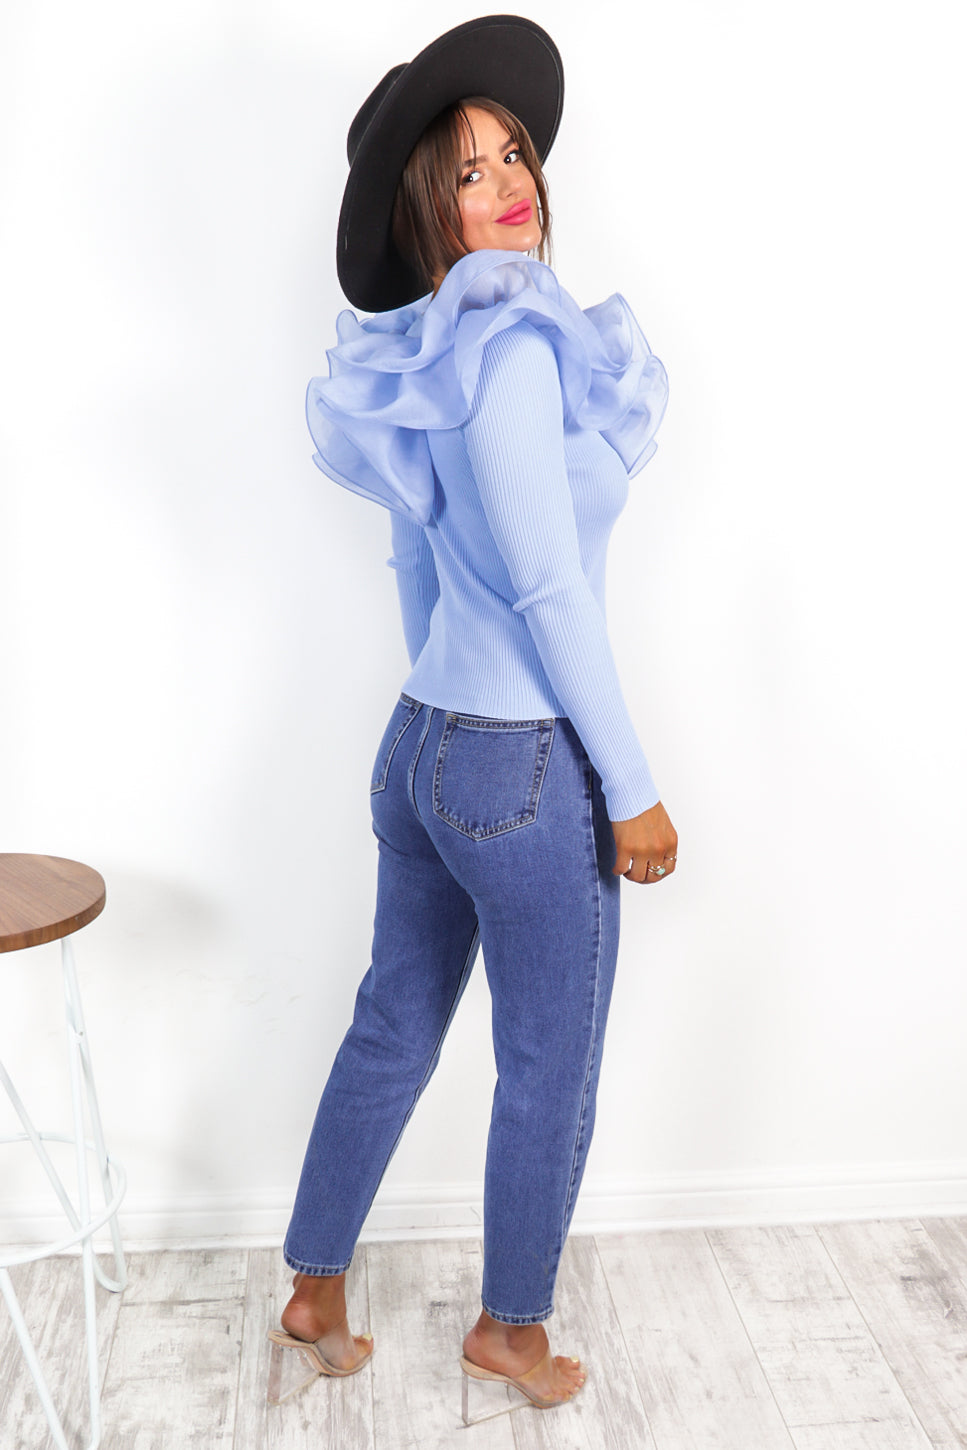 It's A Frill - Blue Frilled Top